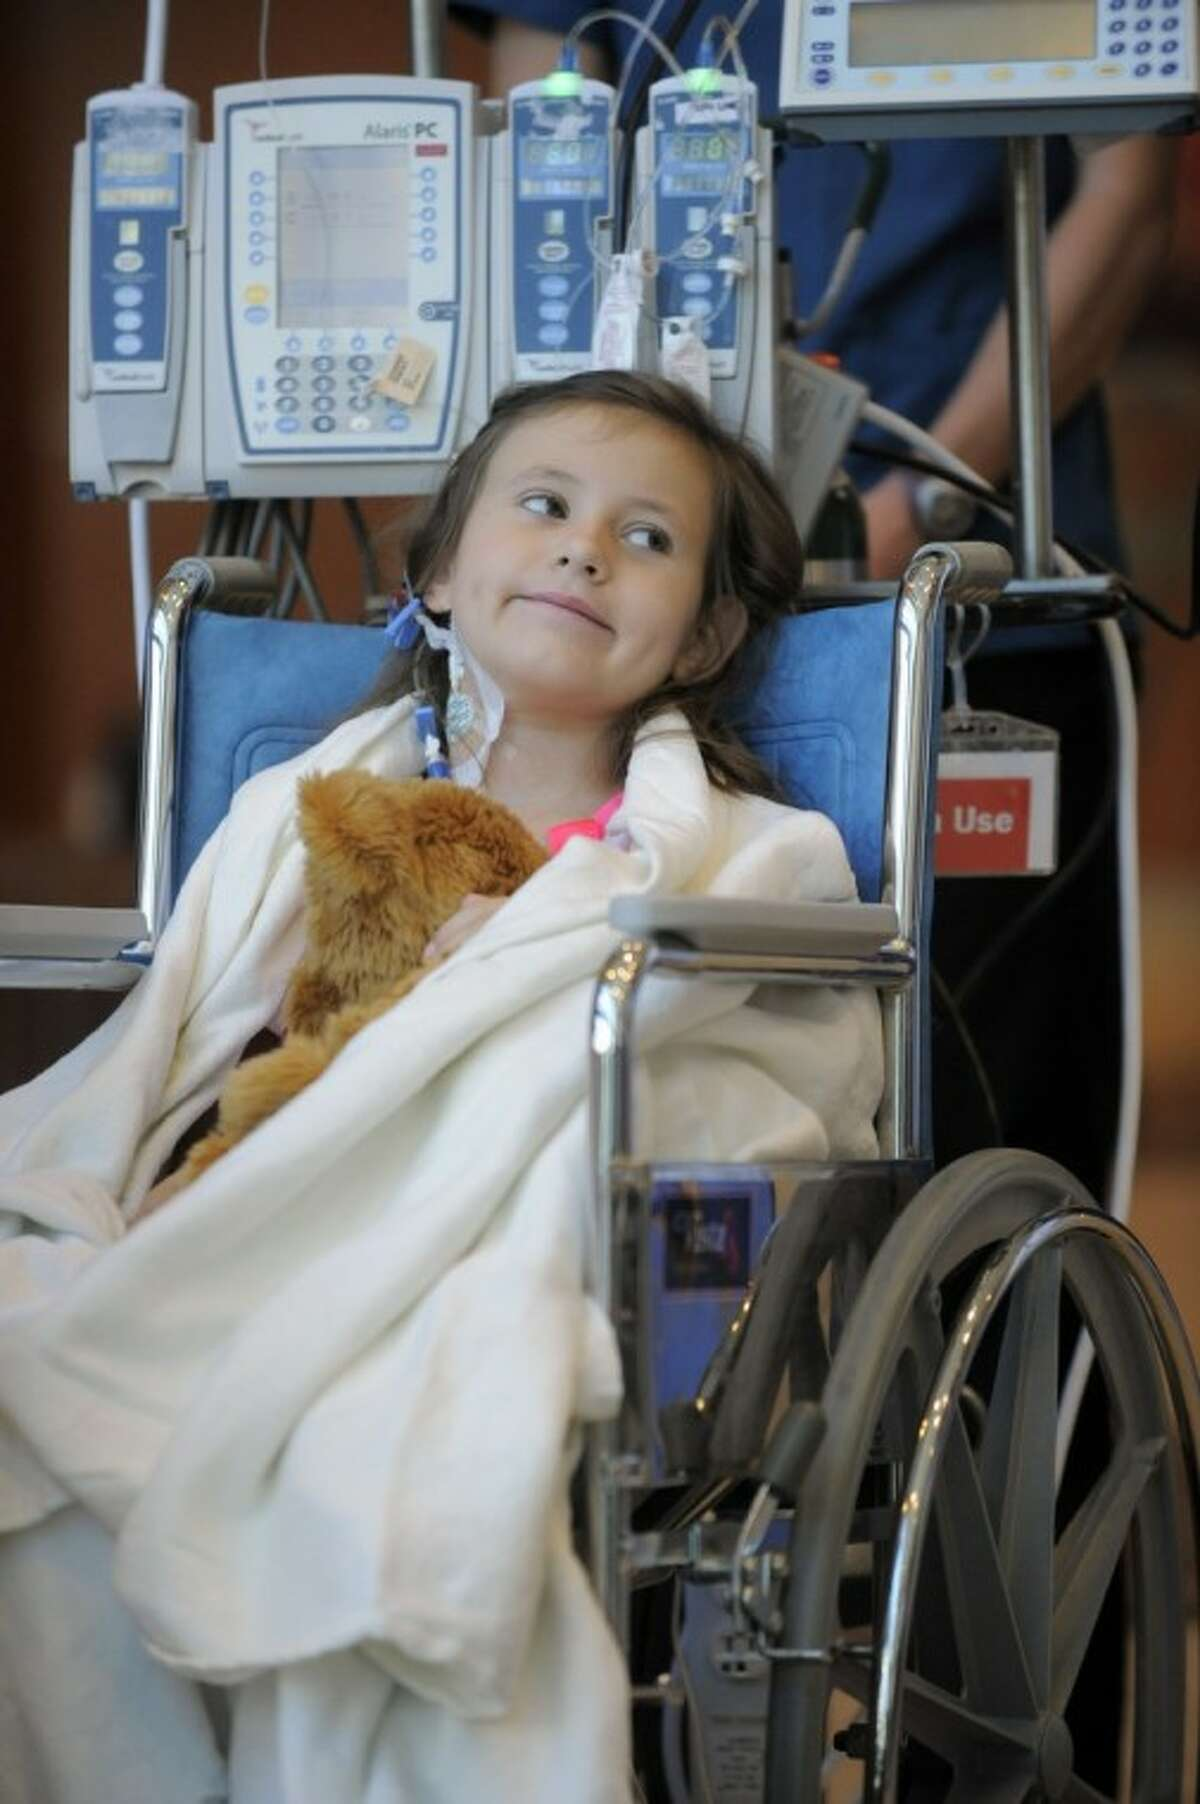 Seven-year-old Sierra Jane Downing from Pagosa Springs, Colo., smiles during a news conference about her recovery from bubonic plague at the Rocky Mountain Hospital for Children at Presbyterian/St. Luke's Wednesday in Denver. It is believed Downing caught the bubonic plague from burying a dead squirrel.